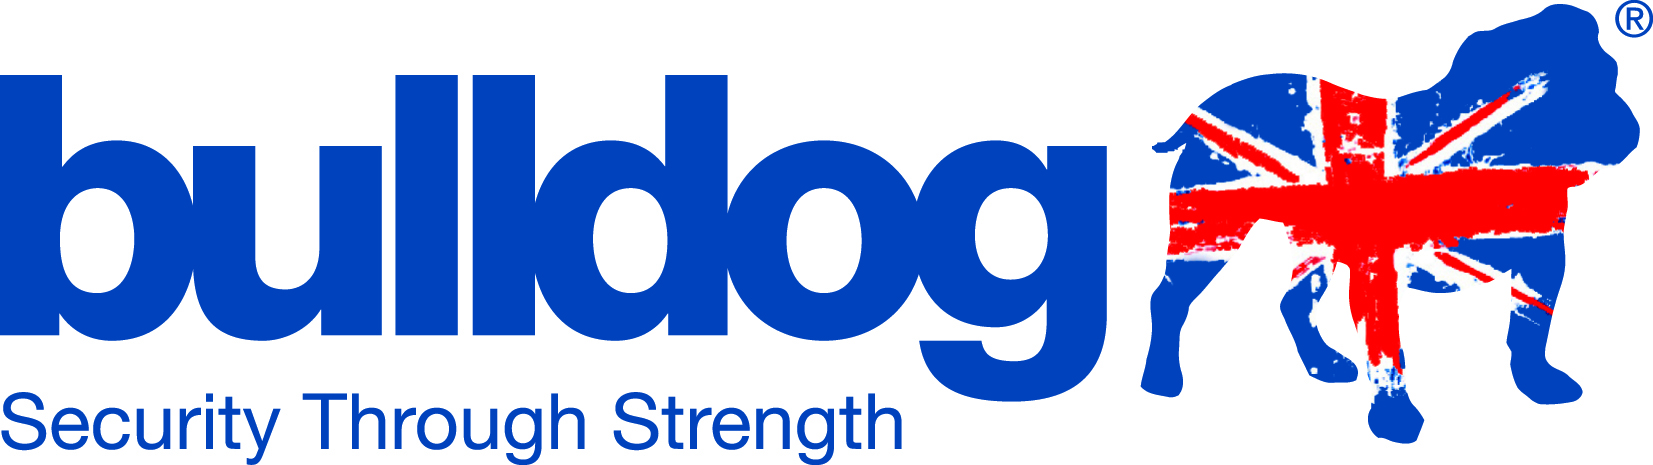 Bulldog Security Products - made in the UK